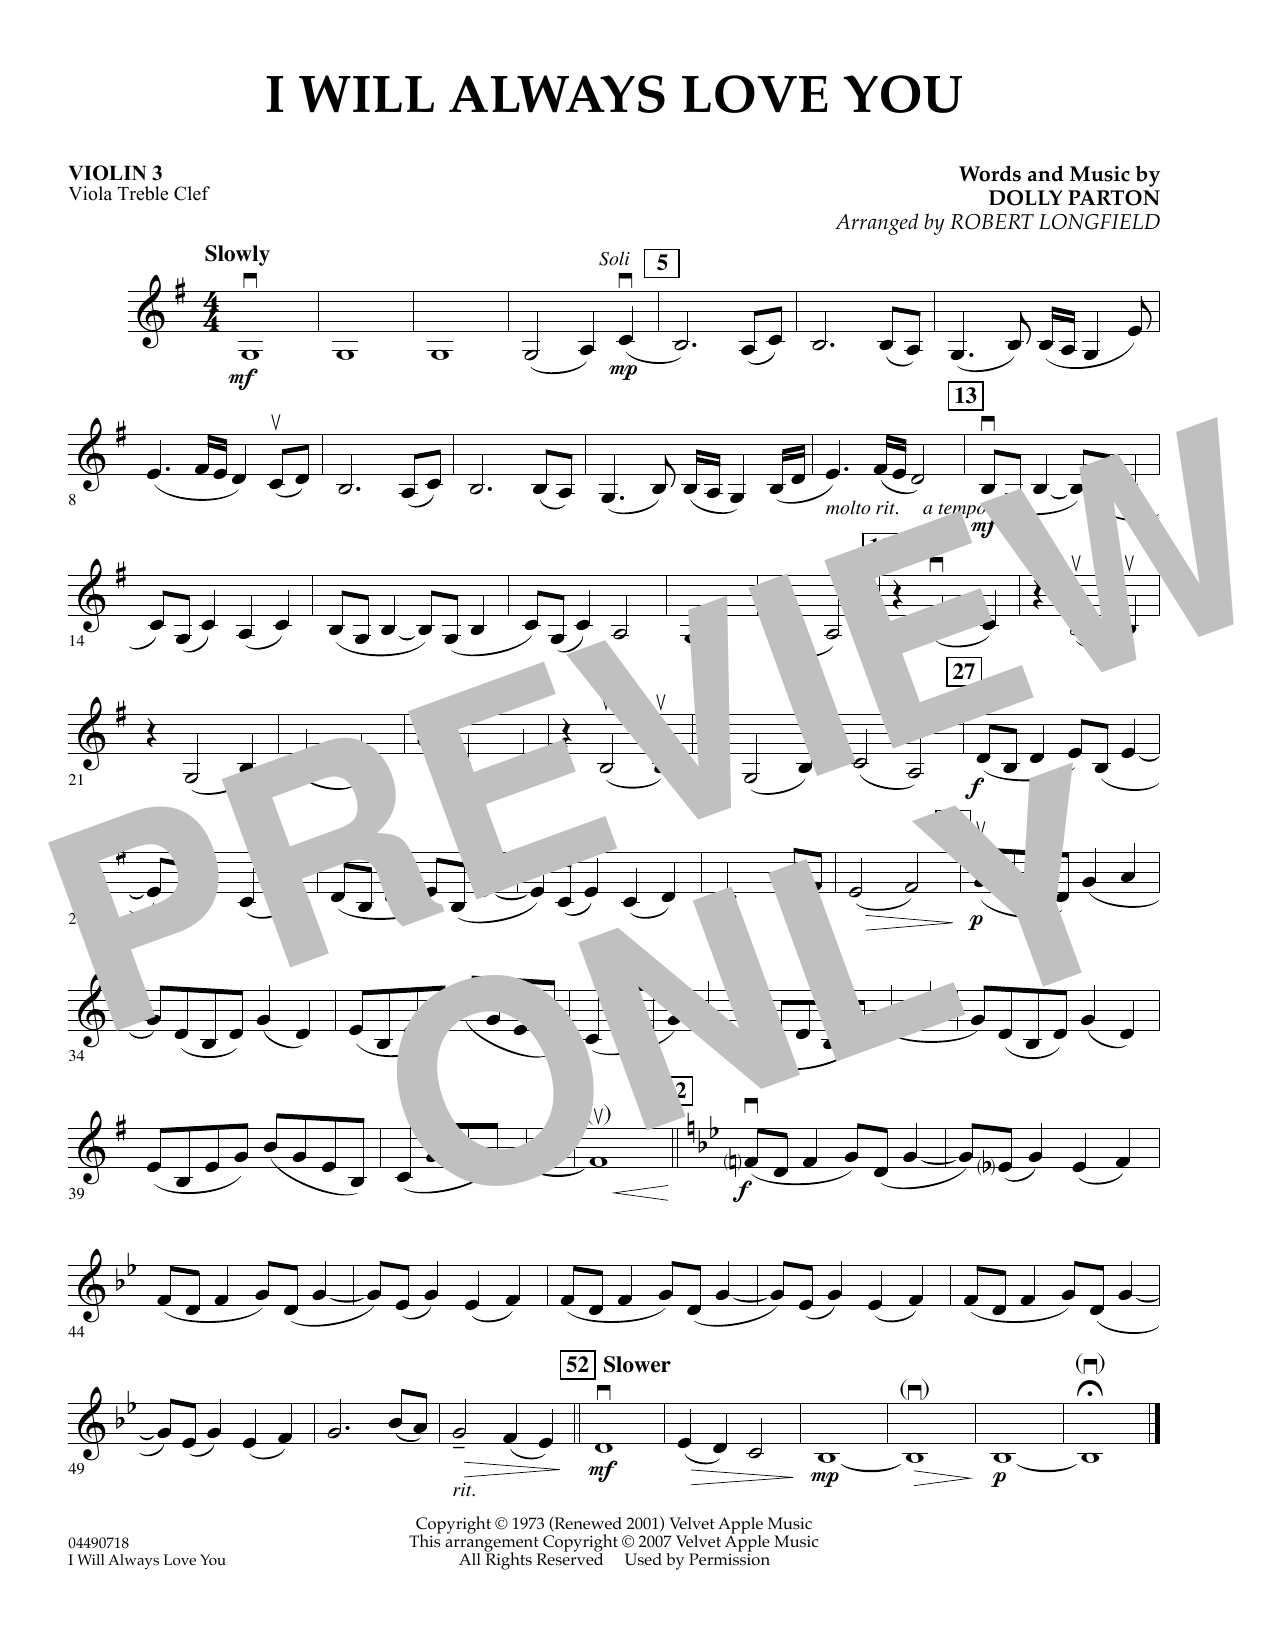 Robert Longfield I Will Always Love You - Violin 3 (Viola T.C.) sheet music preview music notes and score for Orchestra including 1 page(s)